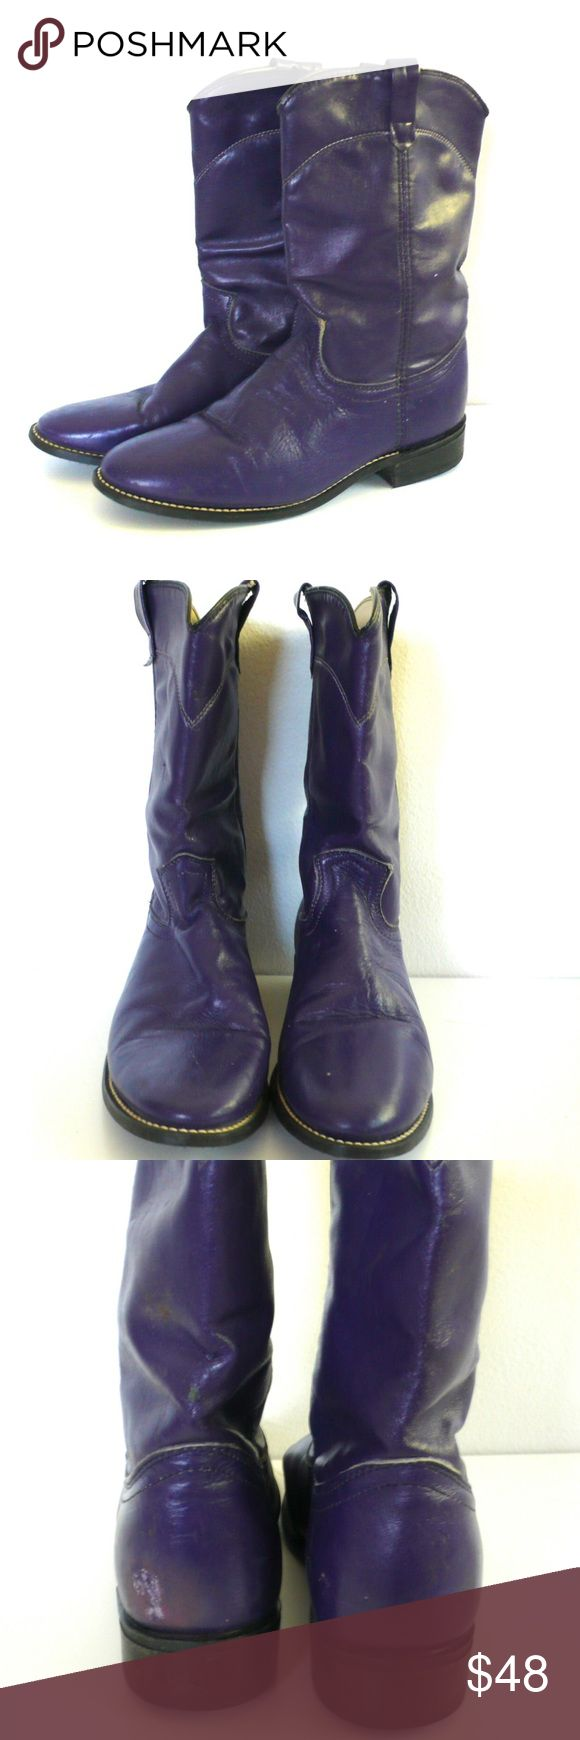 "Vintage Acme Purple Leather Cowboy Boots // 8 1/2 Awesome pair of vintage cowboy boots. ACME, made in USA. Bright purple leather, worn in perfectly. Very good condition, one spot of discoloration on inside of left boot, see photo. Size 8 1/2 M. 11"" tall, 10 3/4"" toe to heel outsole, 3 1/2"" at widest part of bottom. Vintage Shoes Ankle Boots & Booties"